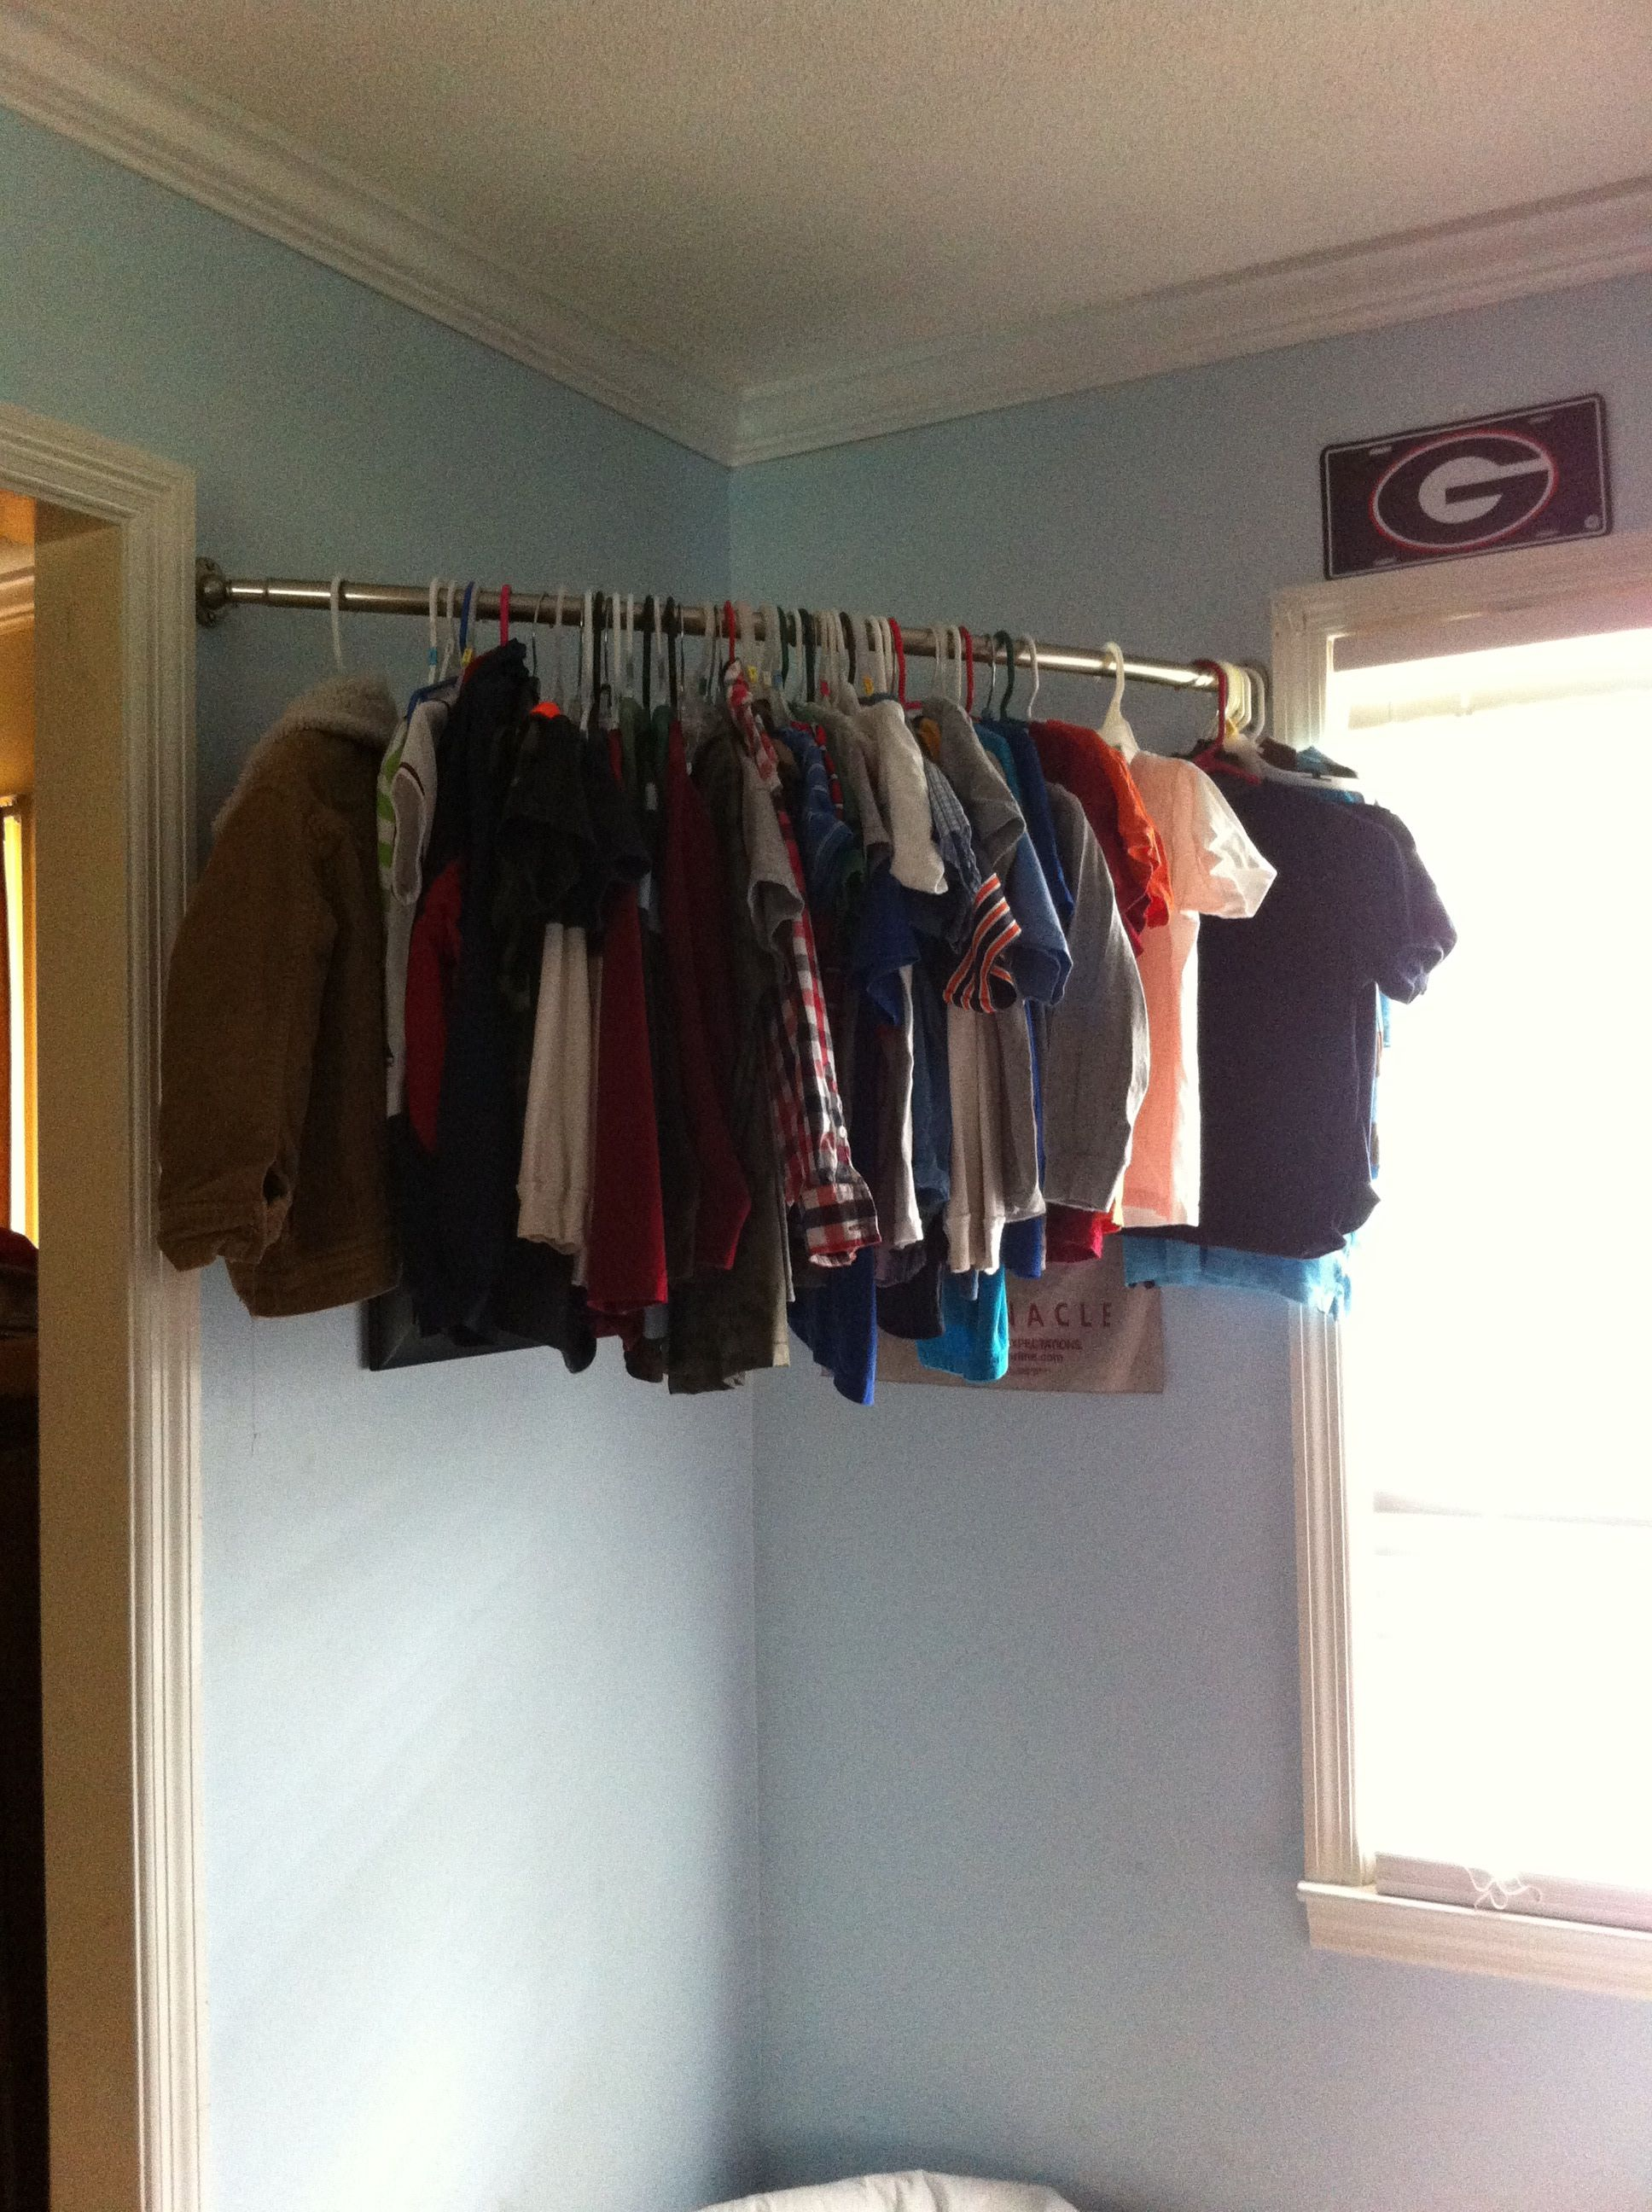 Curved Closet Rod Alluring No Closet I Used A Curved Shower Rod For My Son's Clothes Review